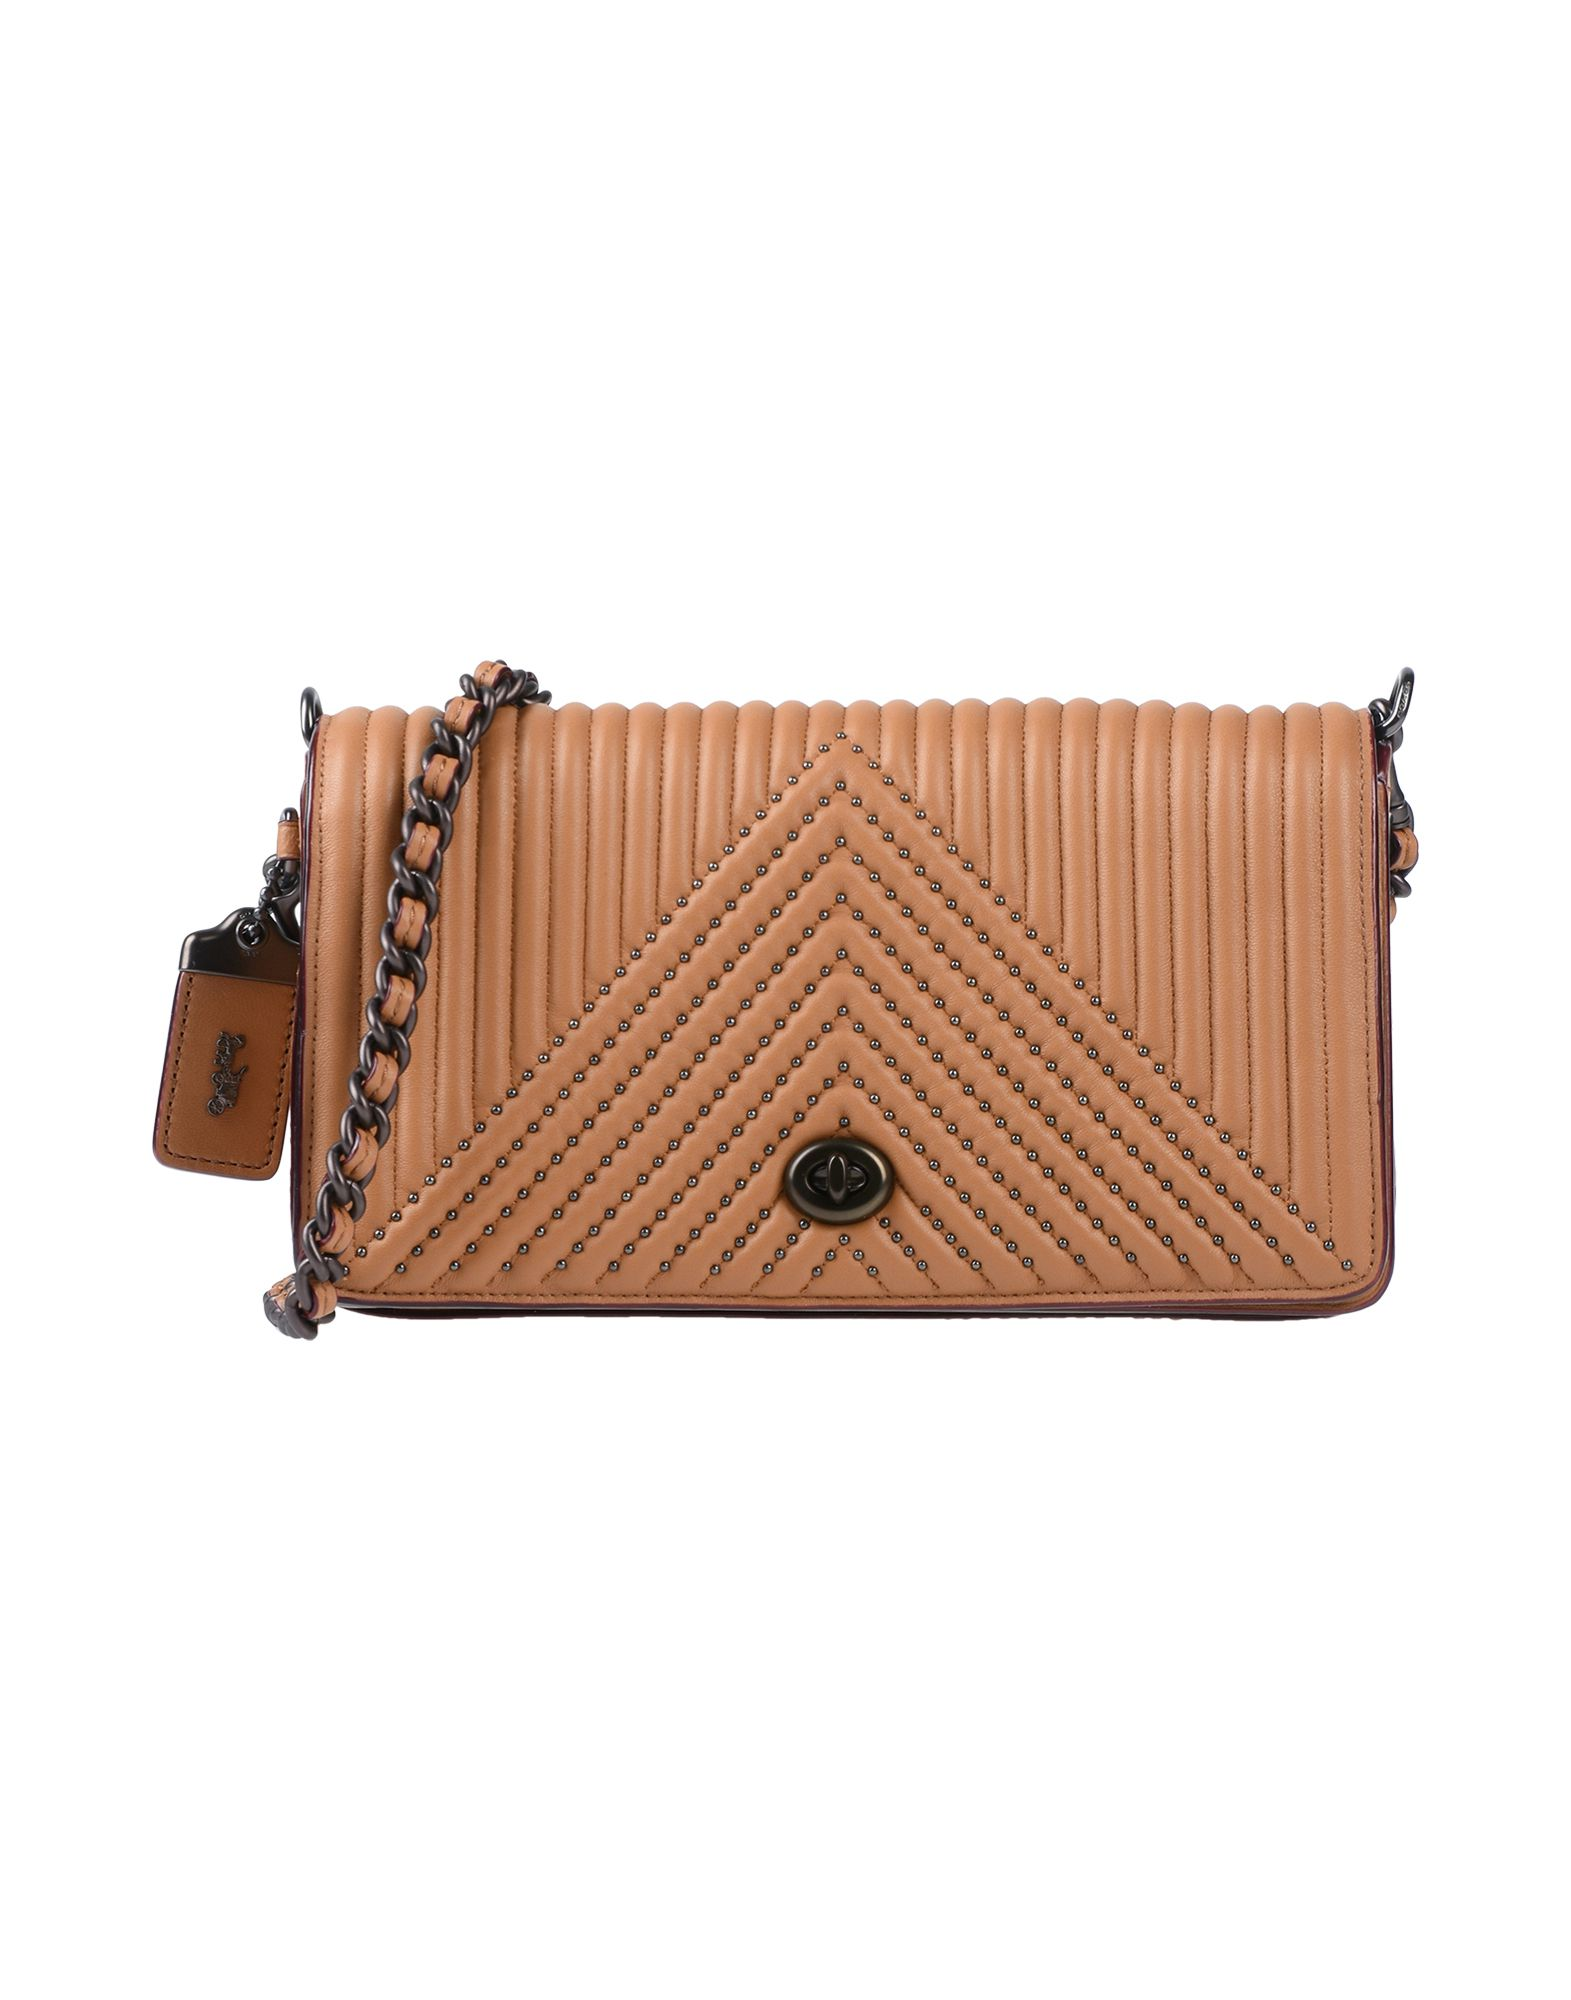 COACH Handbags. mini, leather, quilted, metal applications, solid color, framed closure, external pockets, internal pockets, removable shoulder strap, metallic straps, unlined, contains non-textile parts of animal origin. Soft Leather